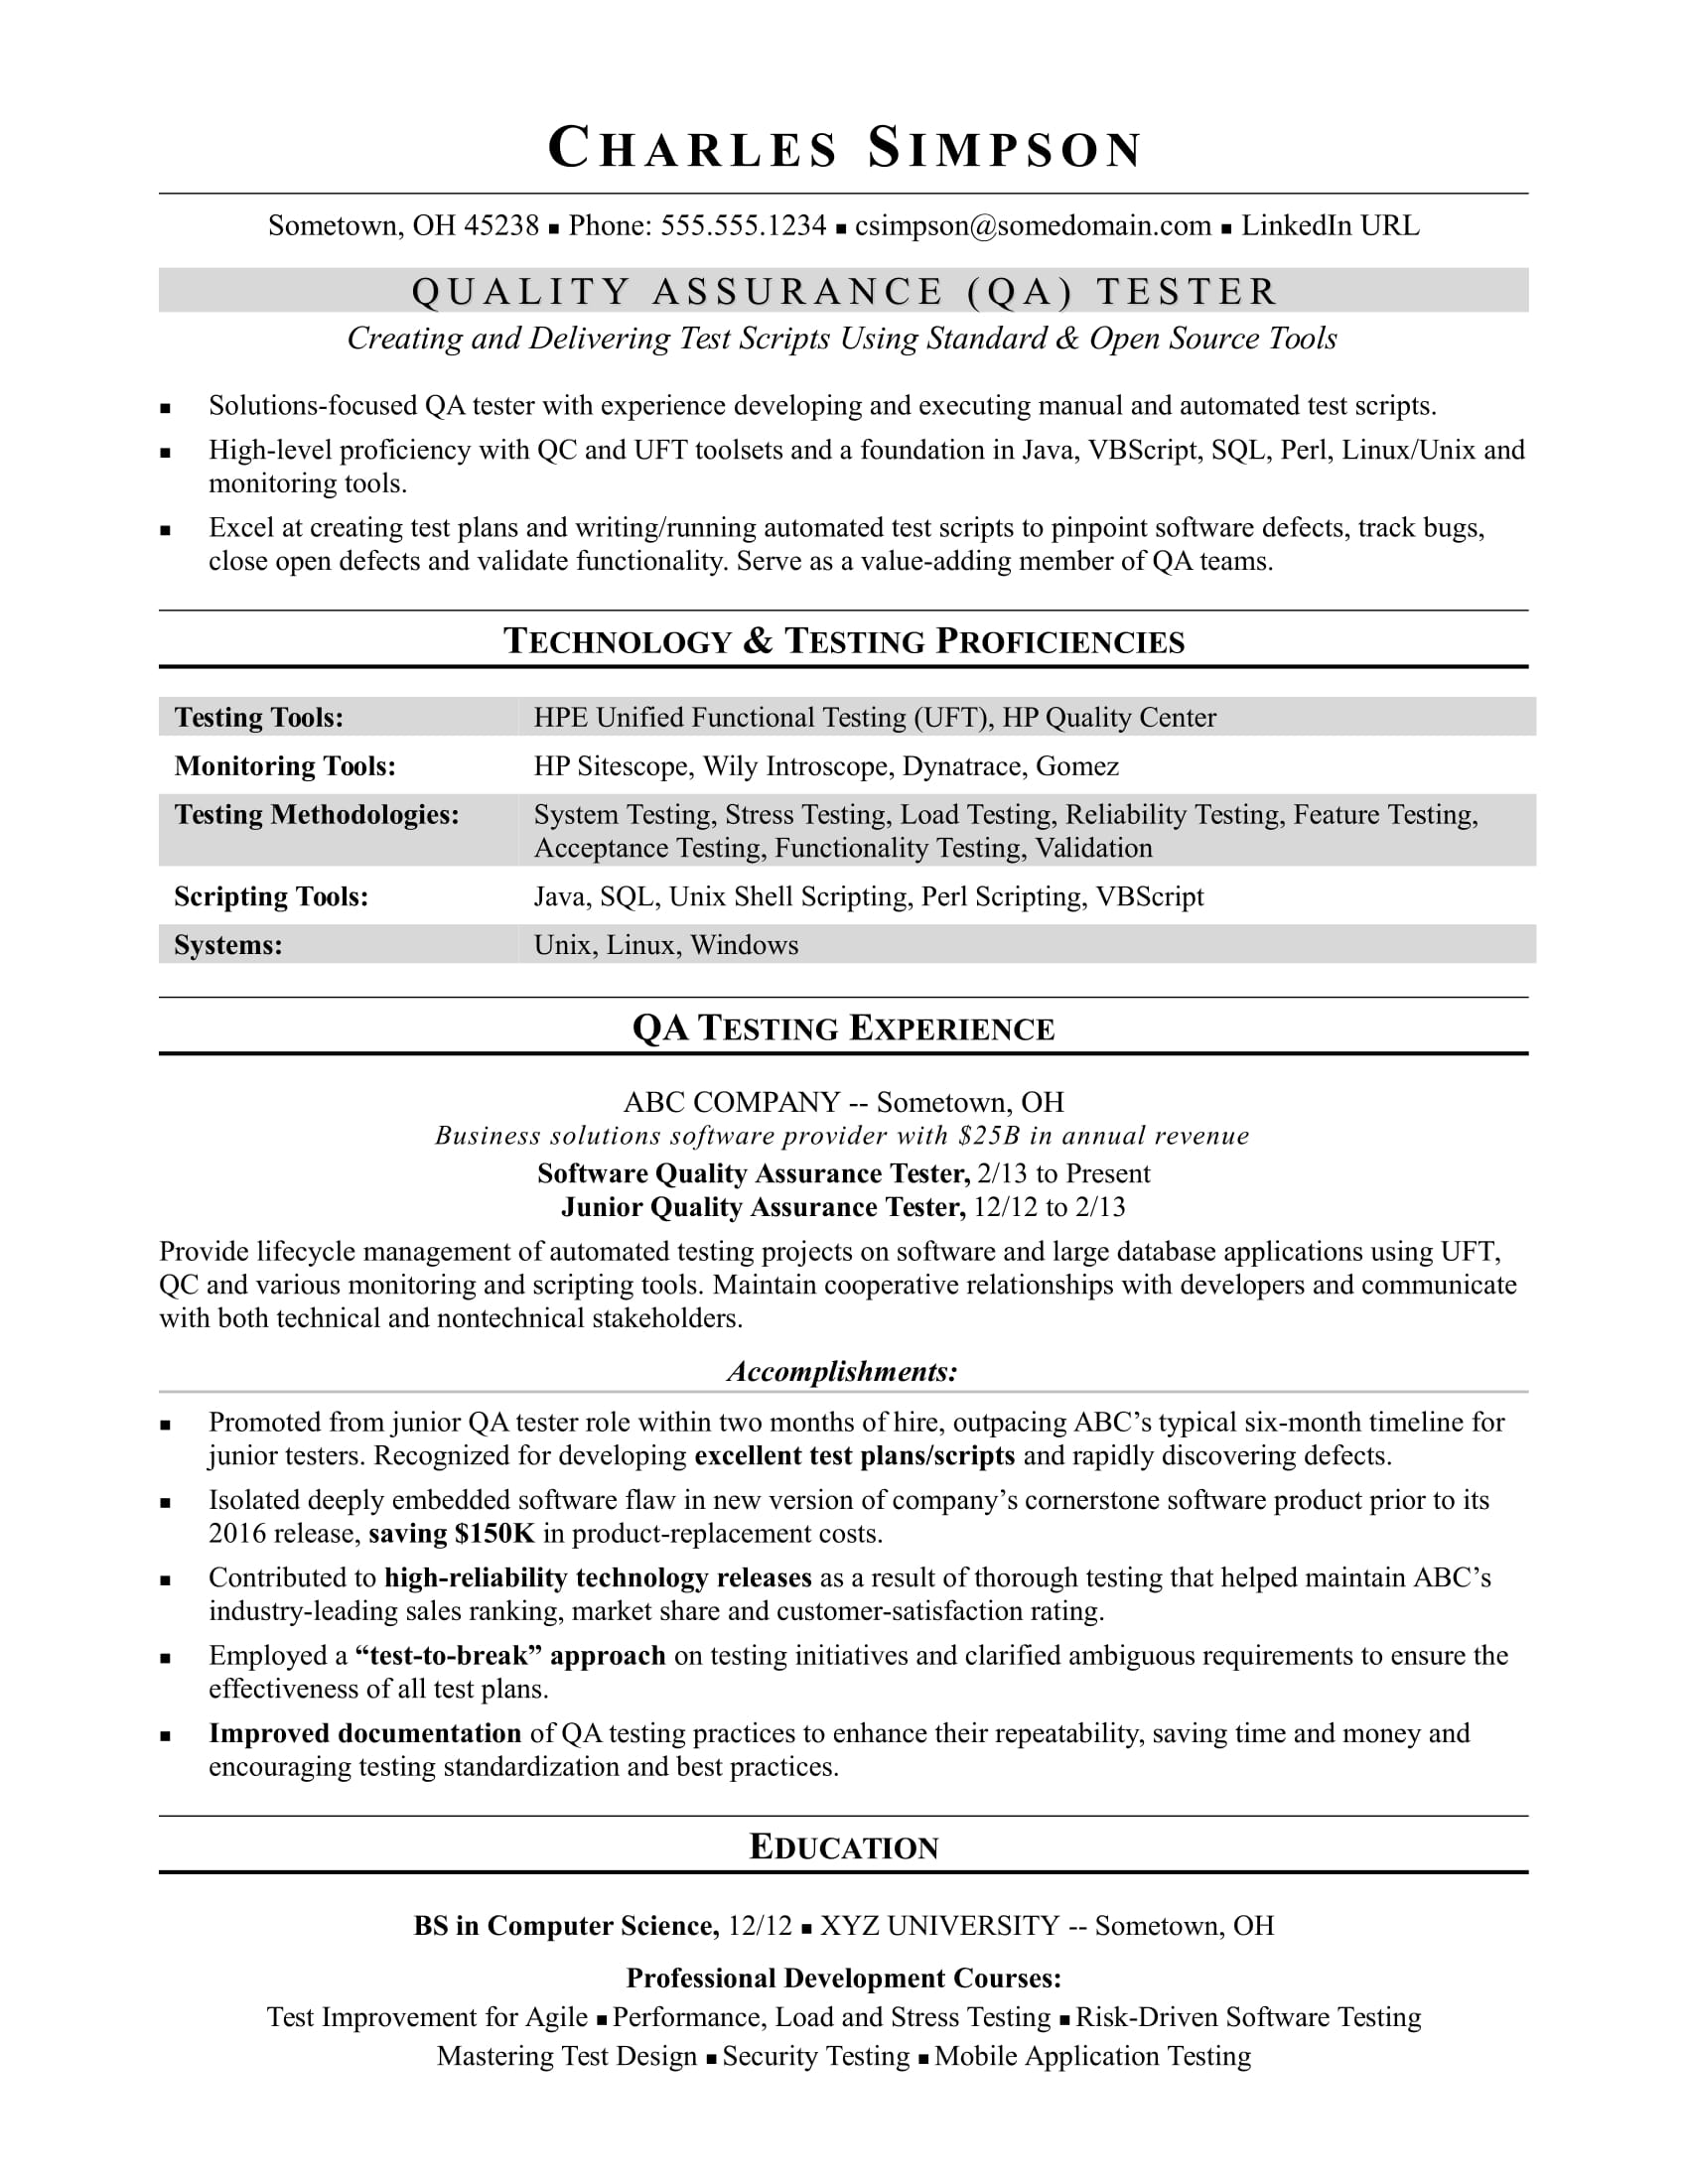 Elegant Sample Resume For A Midlevel QA Software Tester  Qa Resume